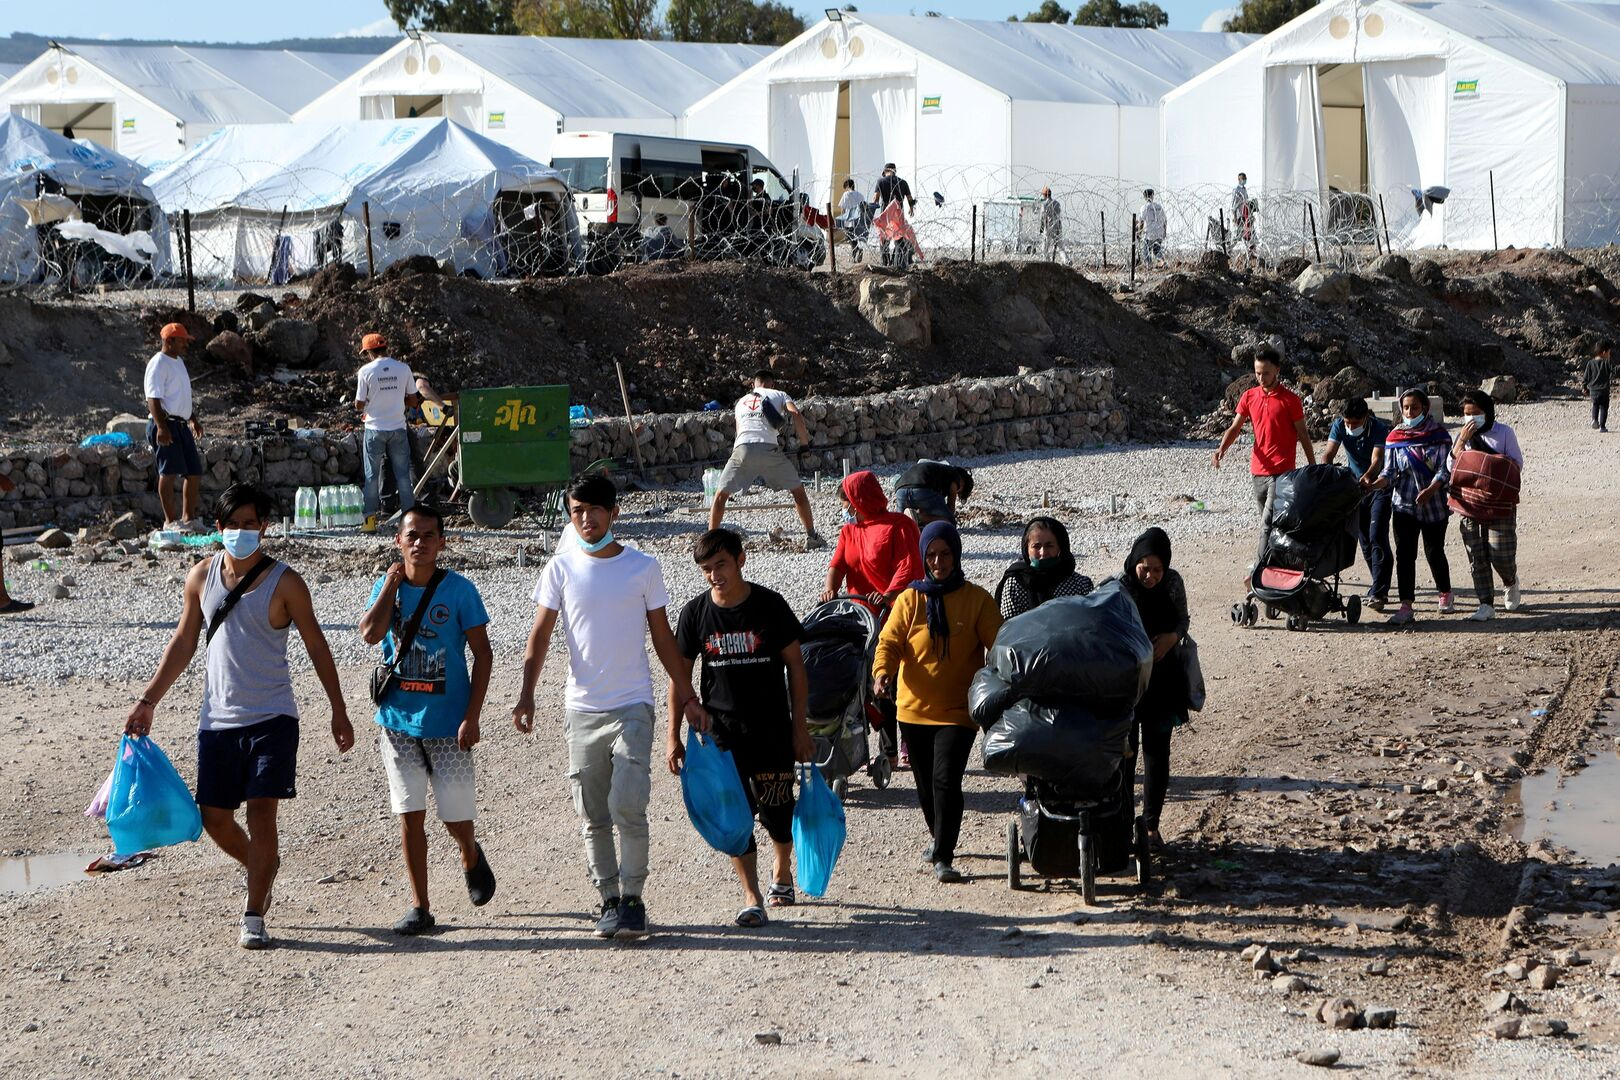 The number of asylum seekers in Europe drops to its lowest level in 12 years